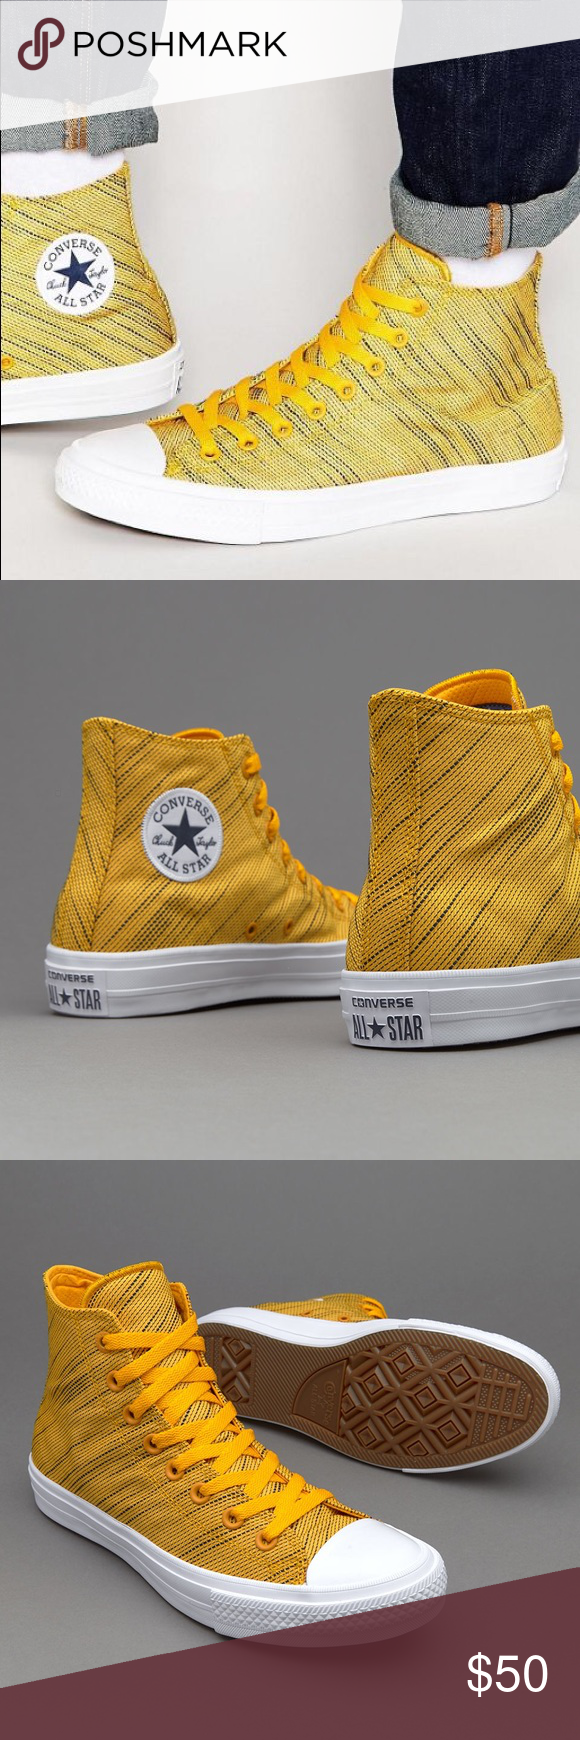 9e85f58bf1f5 Converse Chuck Taylors Knit yellow shoes The Converse Chuck Taylor All Star  2 Knit Collection Is Inspired By Music Festivals. Brand new without box.